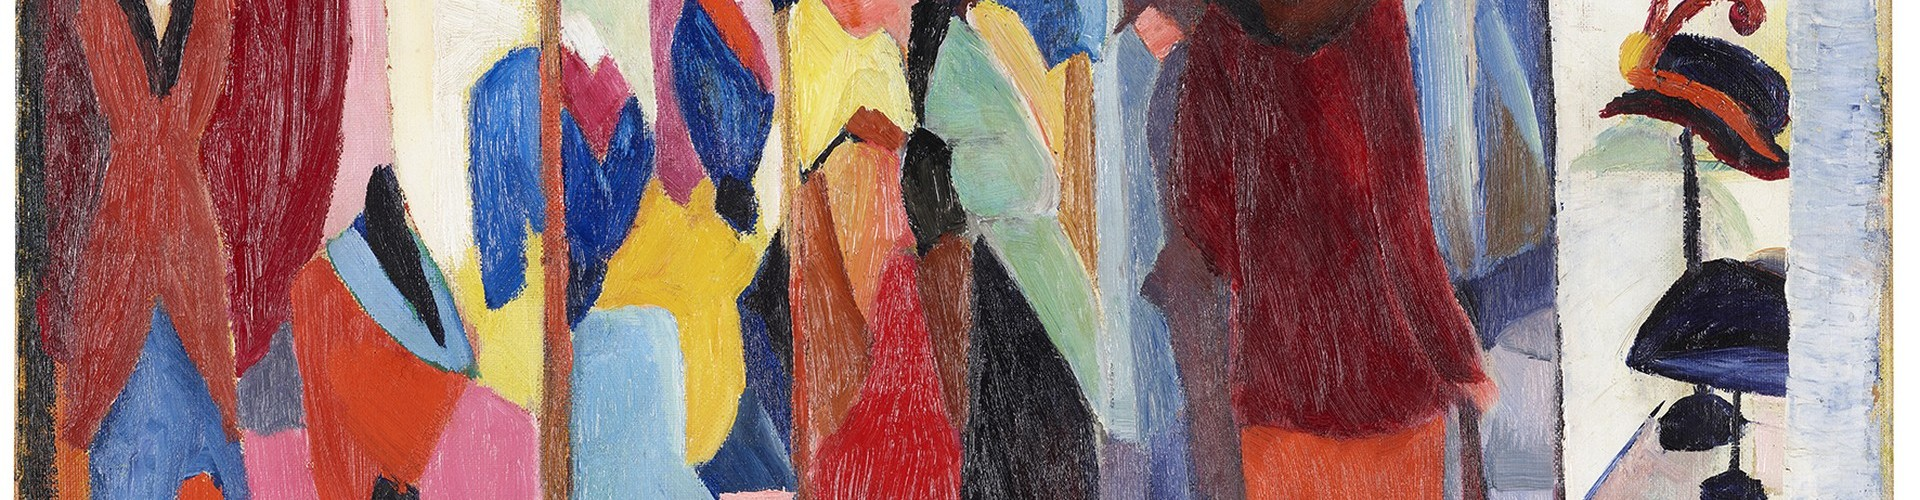 """The exhibition """"August and Elisabeth Macke"""" in the LWL Museum of Art and Culture also includes the painting Fashion Shop from 1913. Photo: LWL/Hanna Neander"""